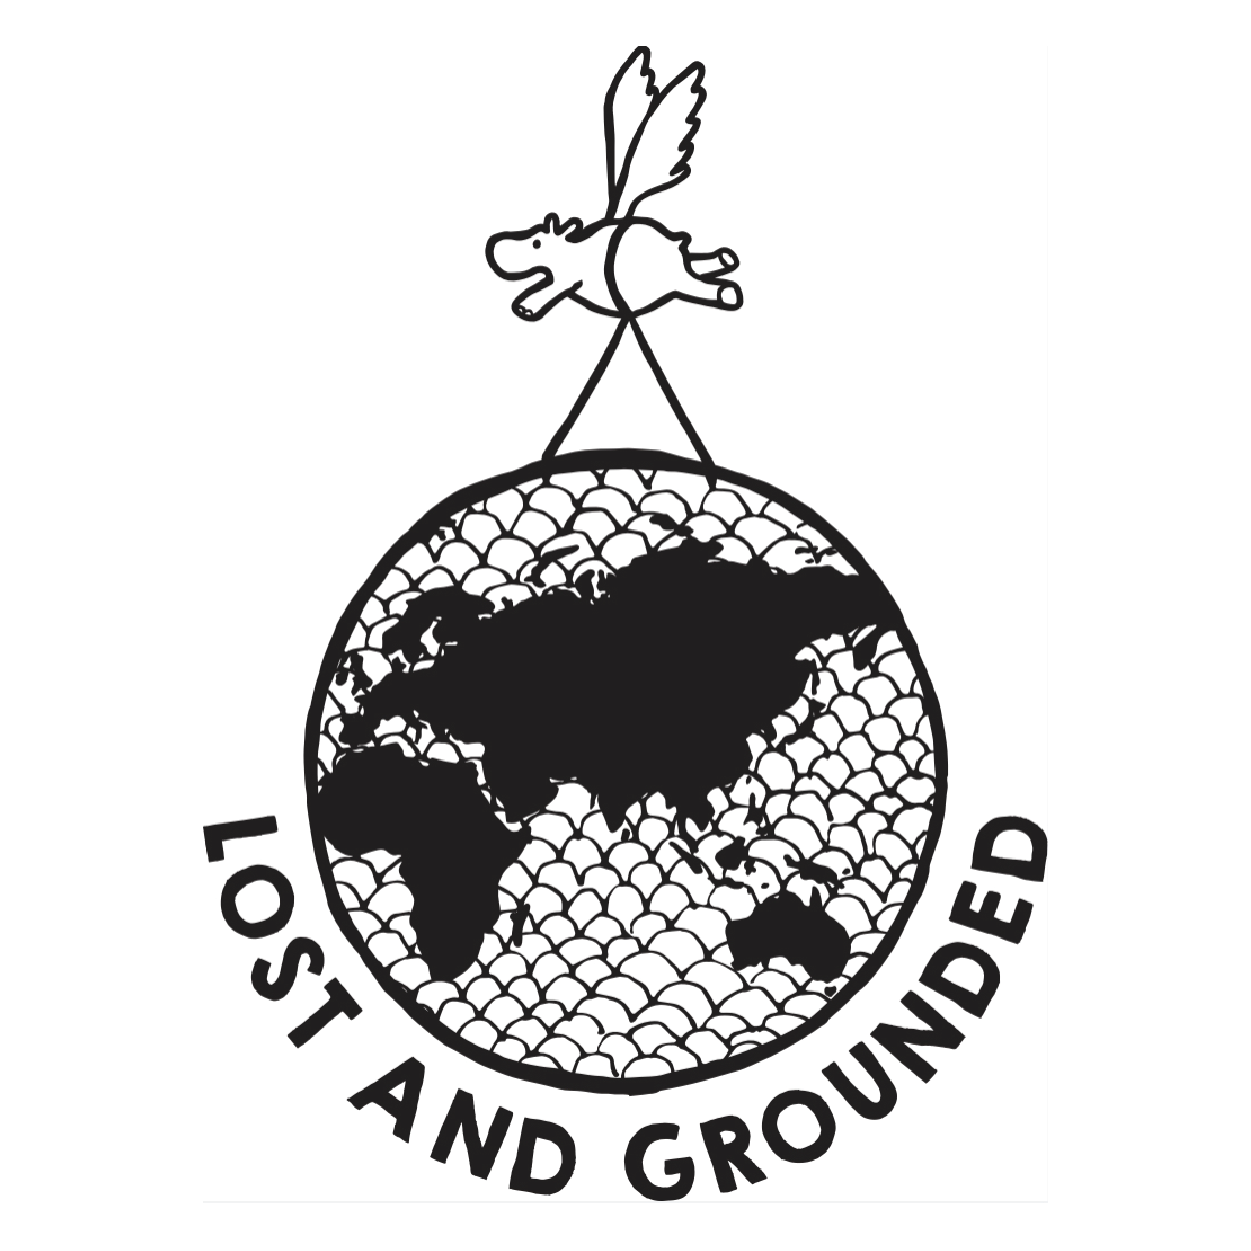 Lost and Grounded